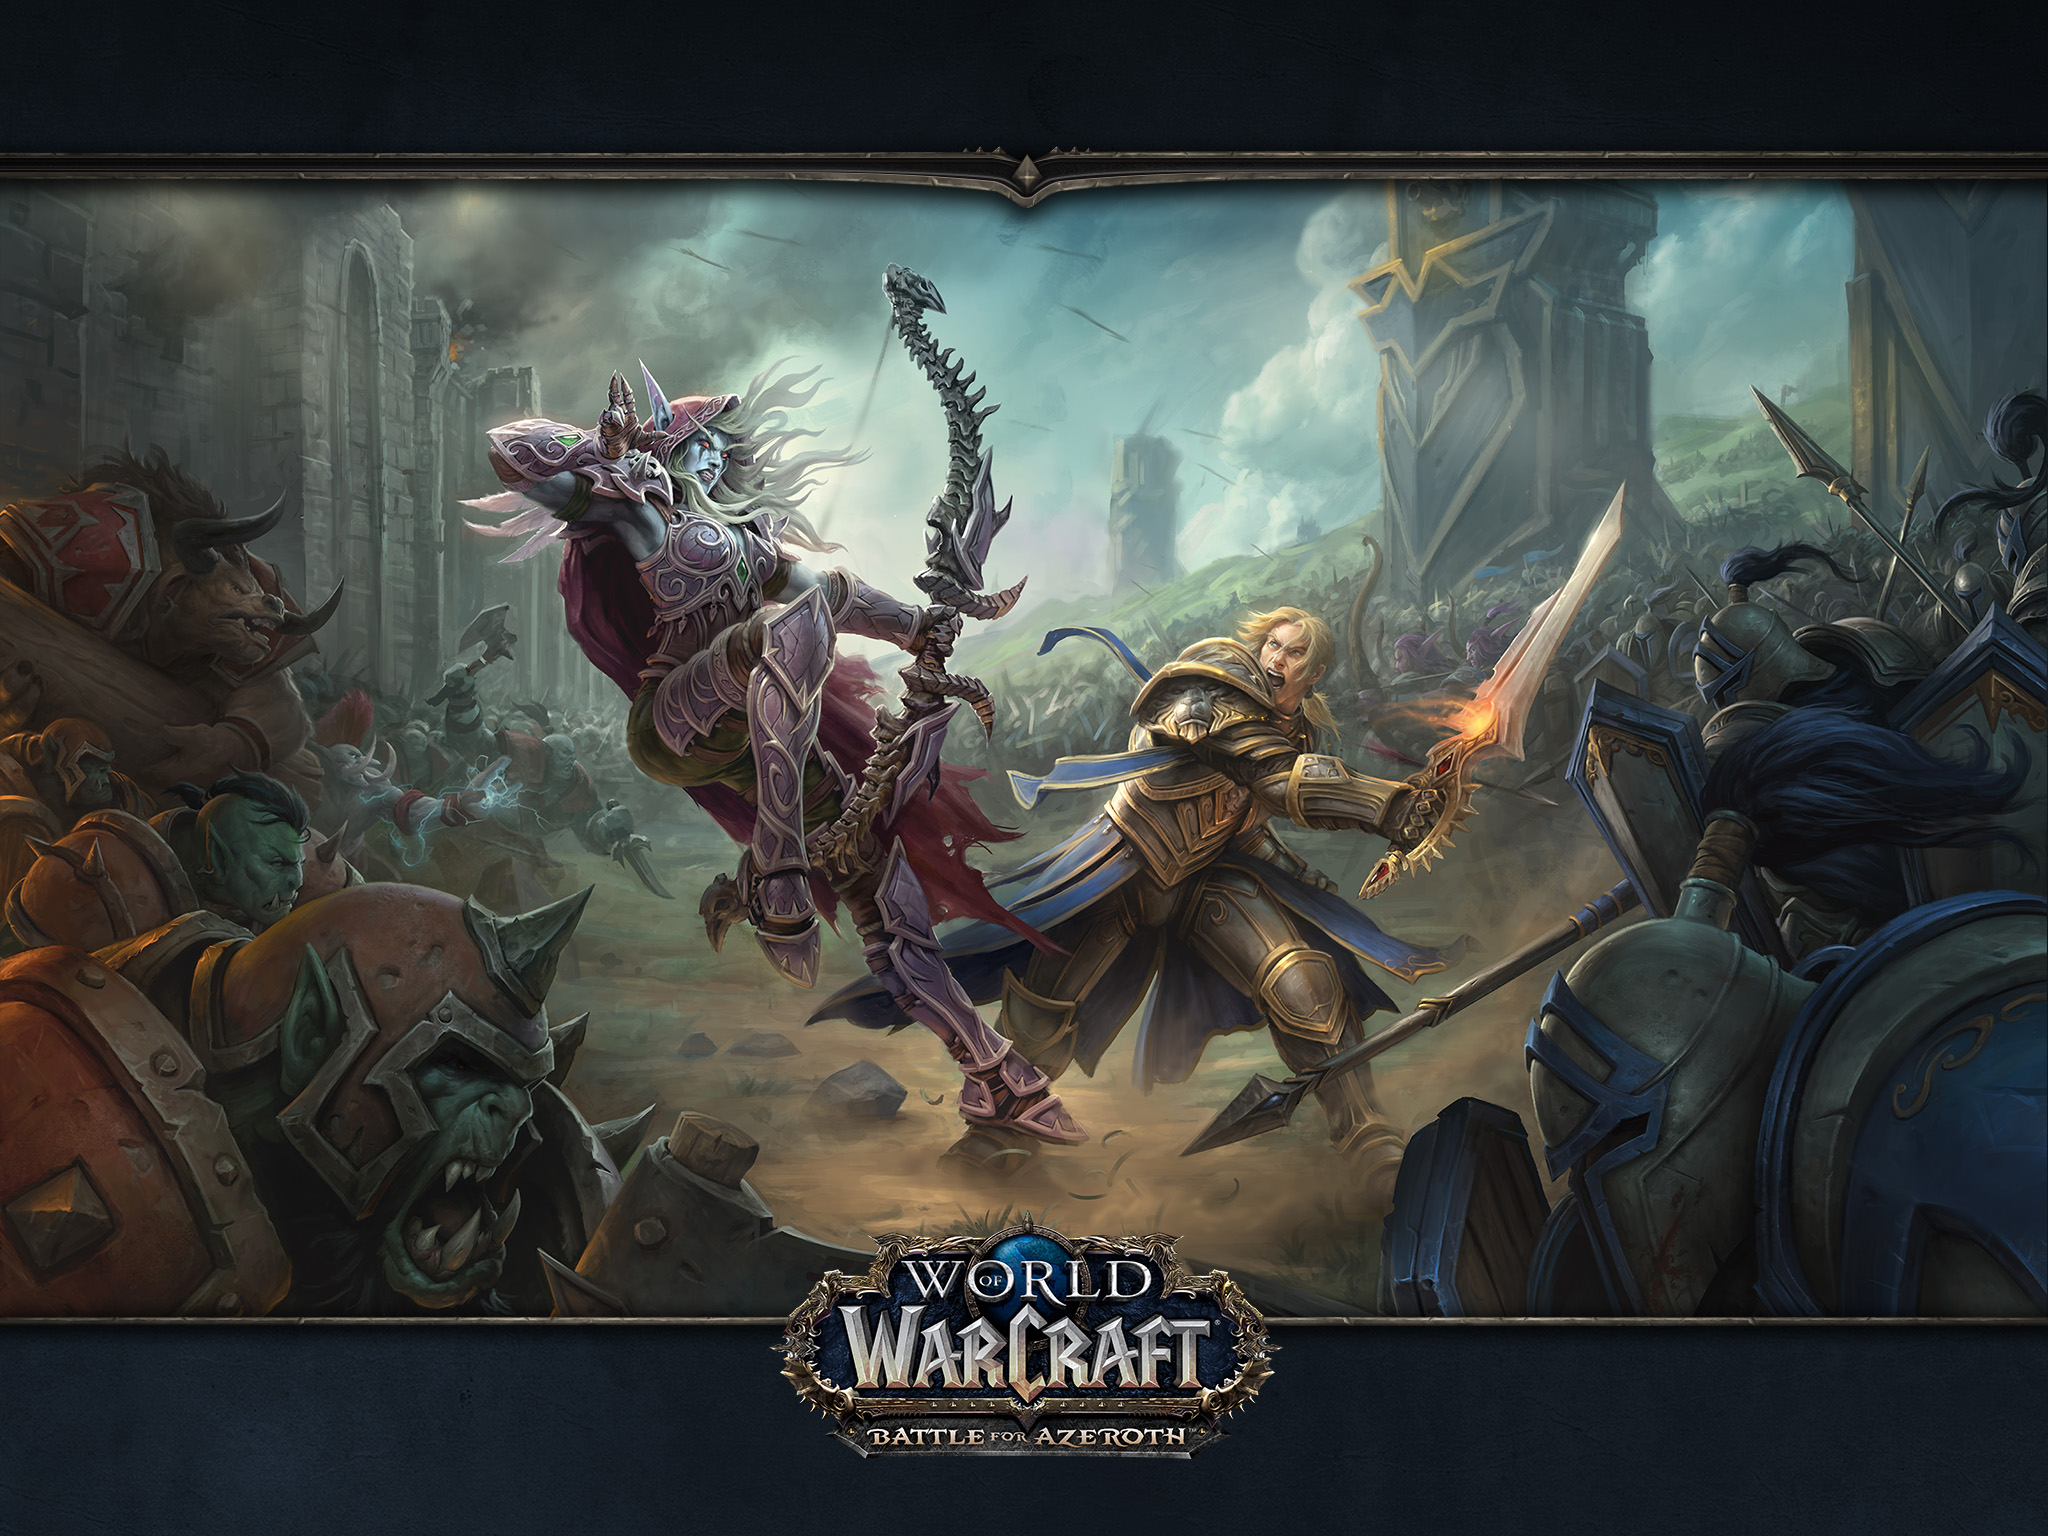 NEWS – World of Warcraft: Battle for Azeroth